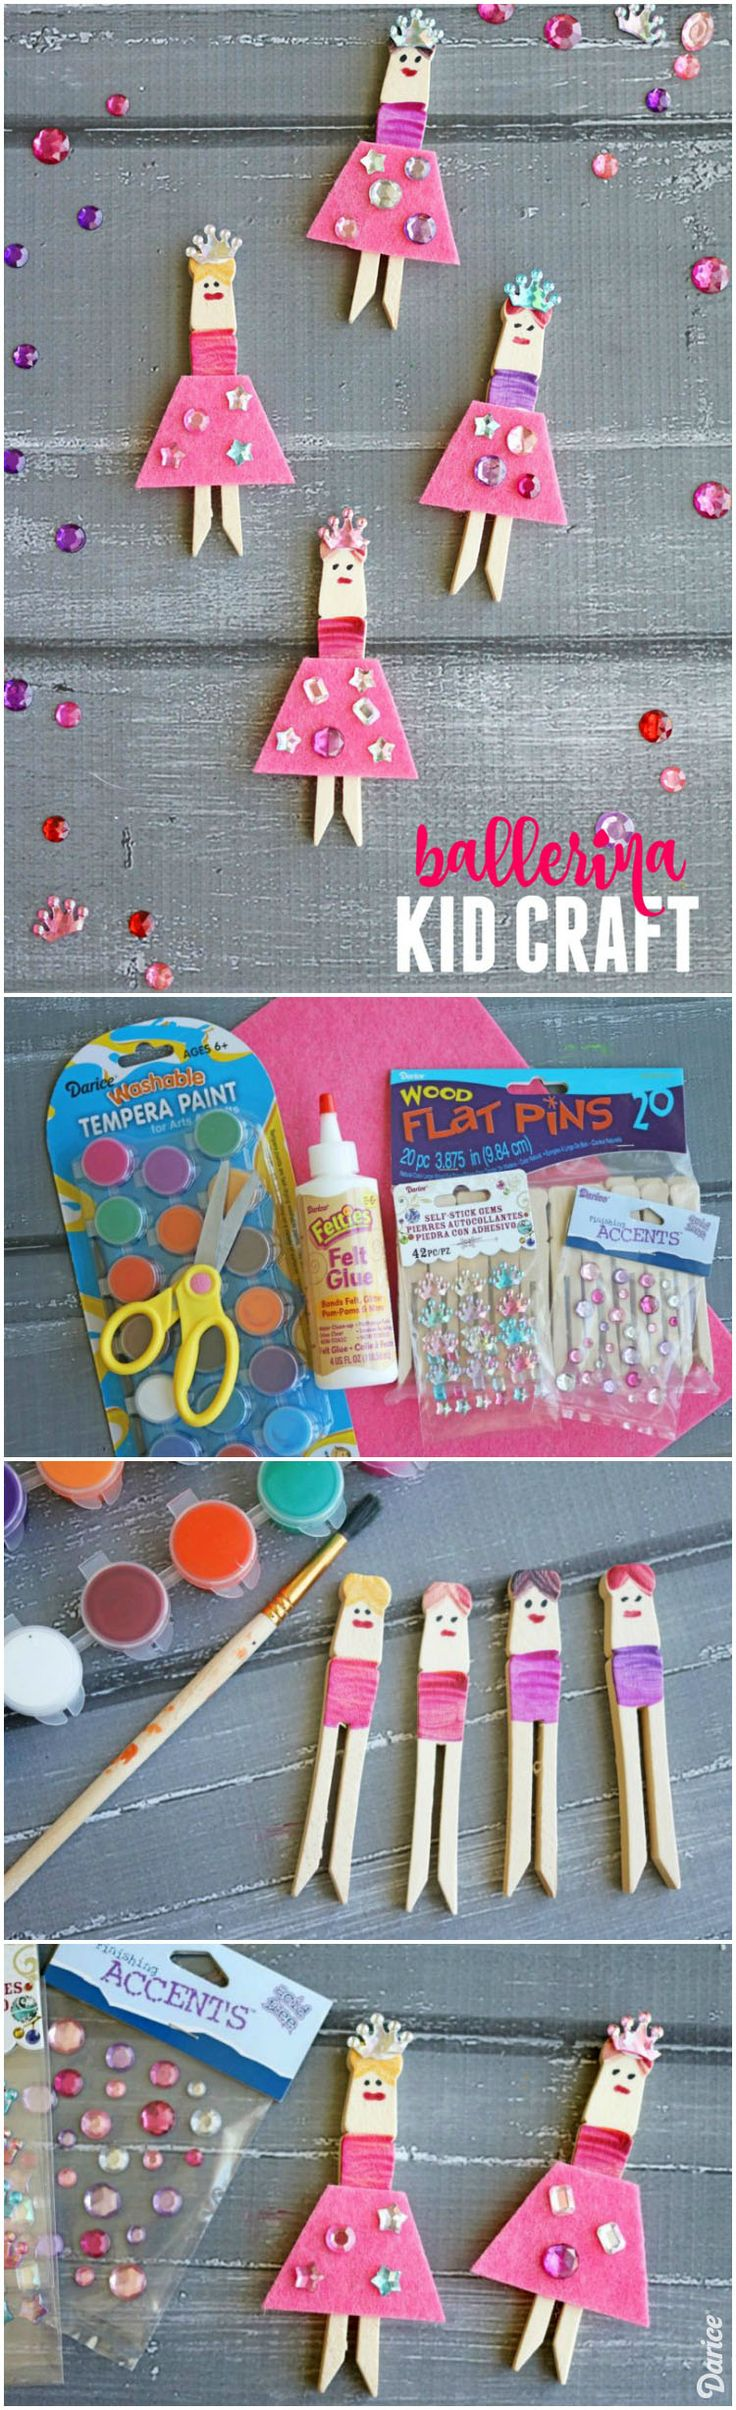 Grab your kids and dance to your own crafty beat as you make these adorable and completely customizable clothespin ballerina crafts together!